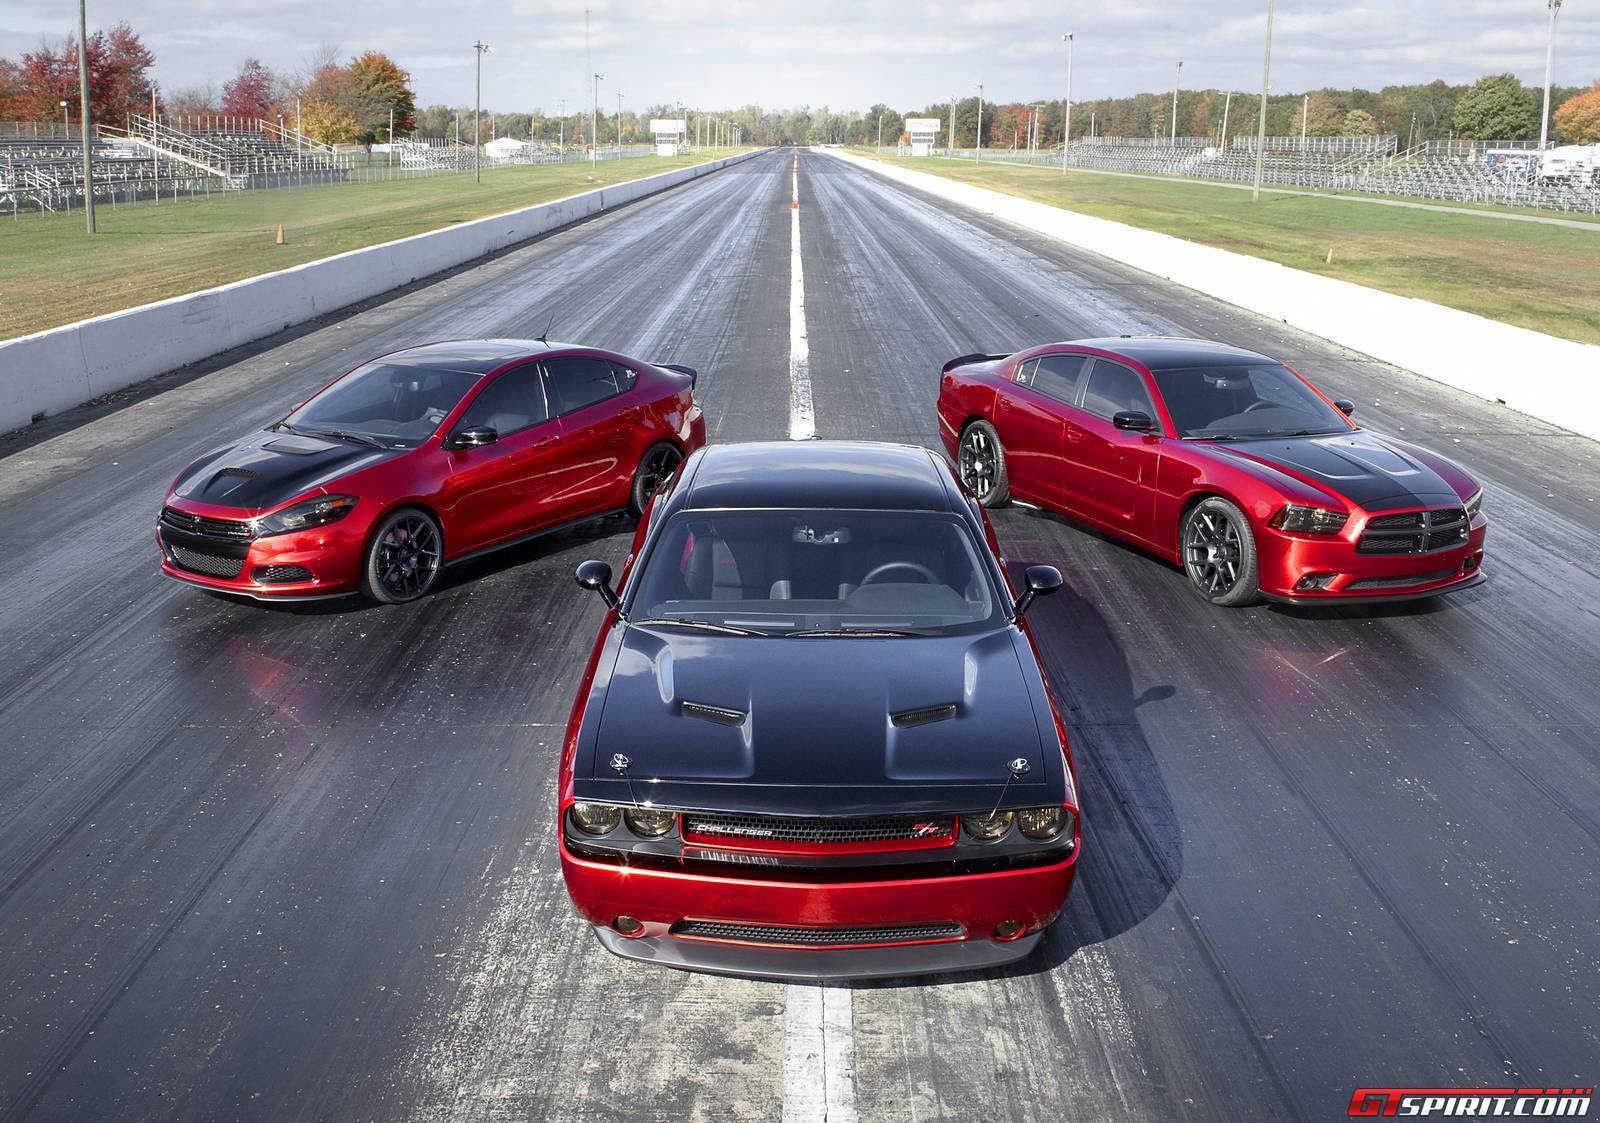 Official: Scat Package Performance Upgrades for Dodge